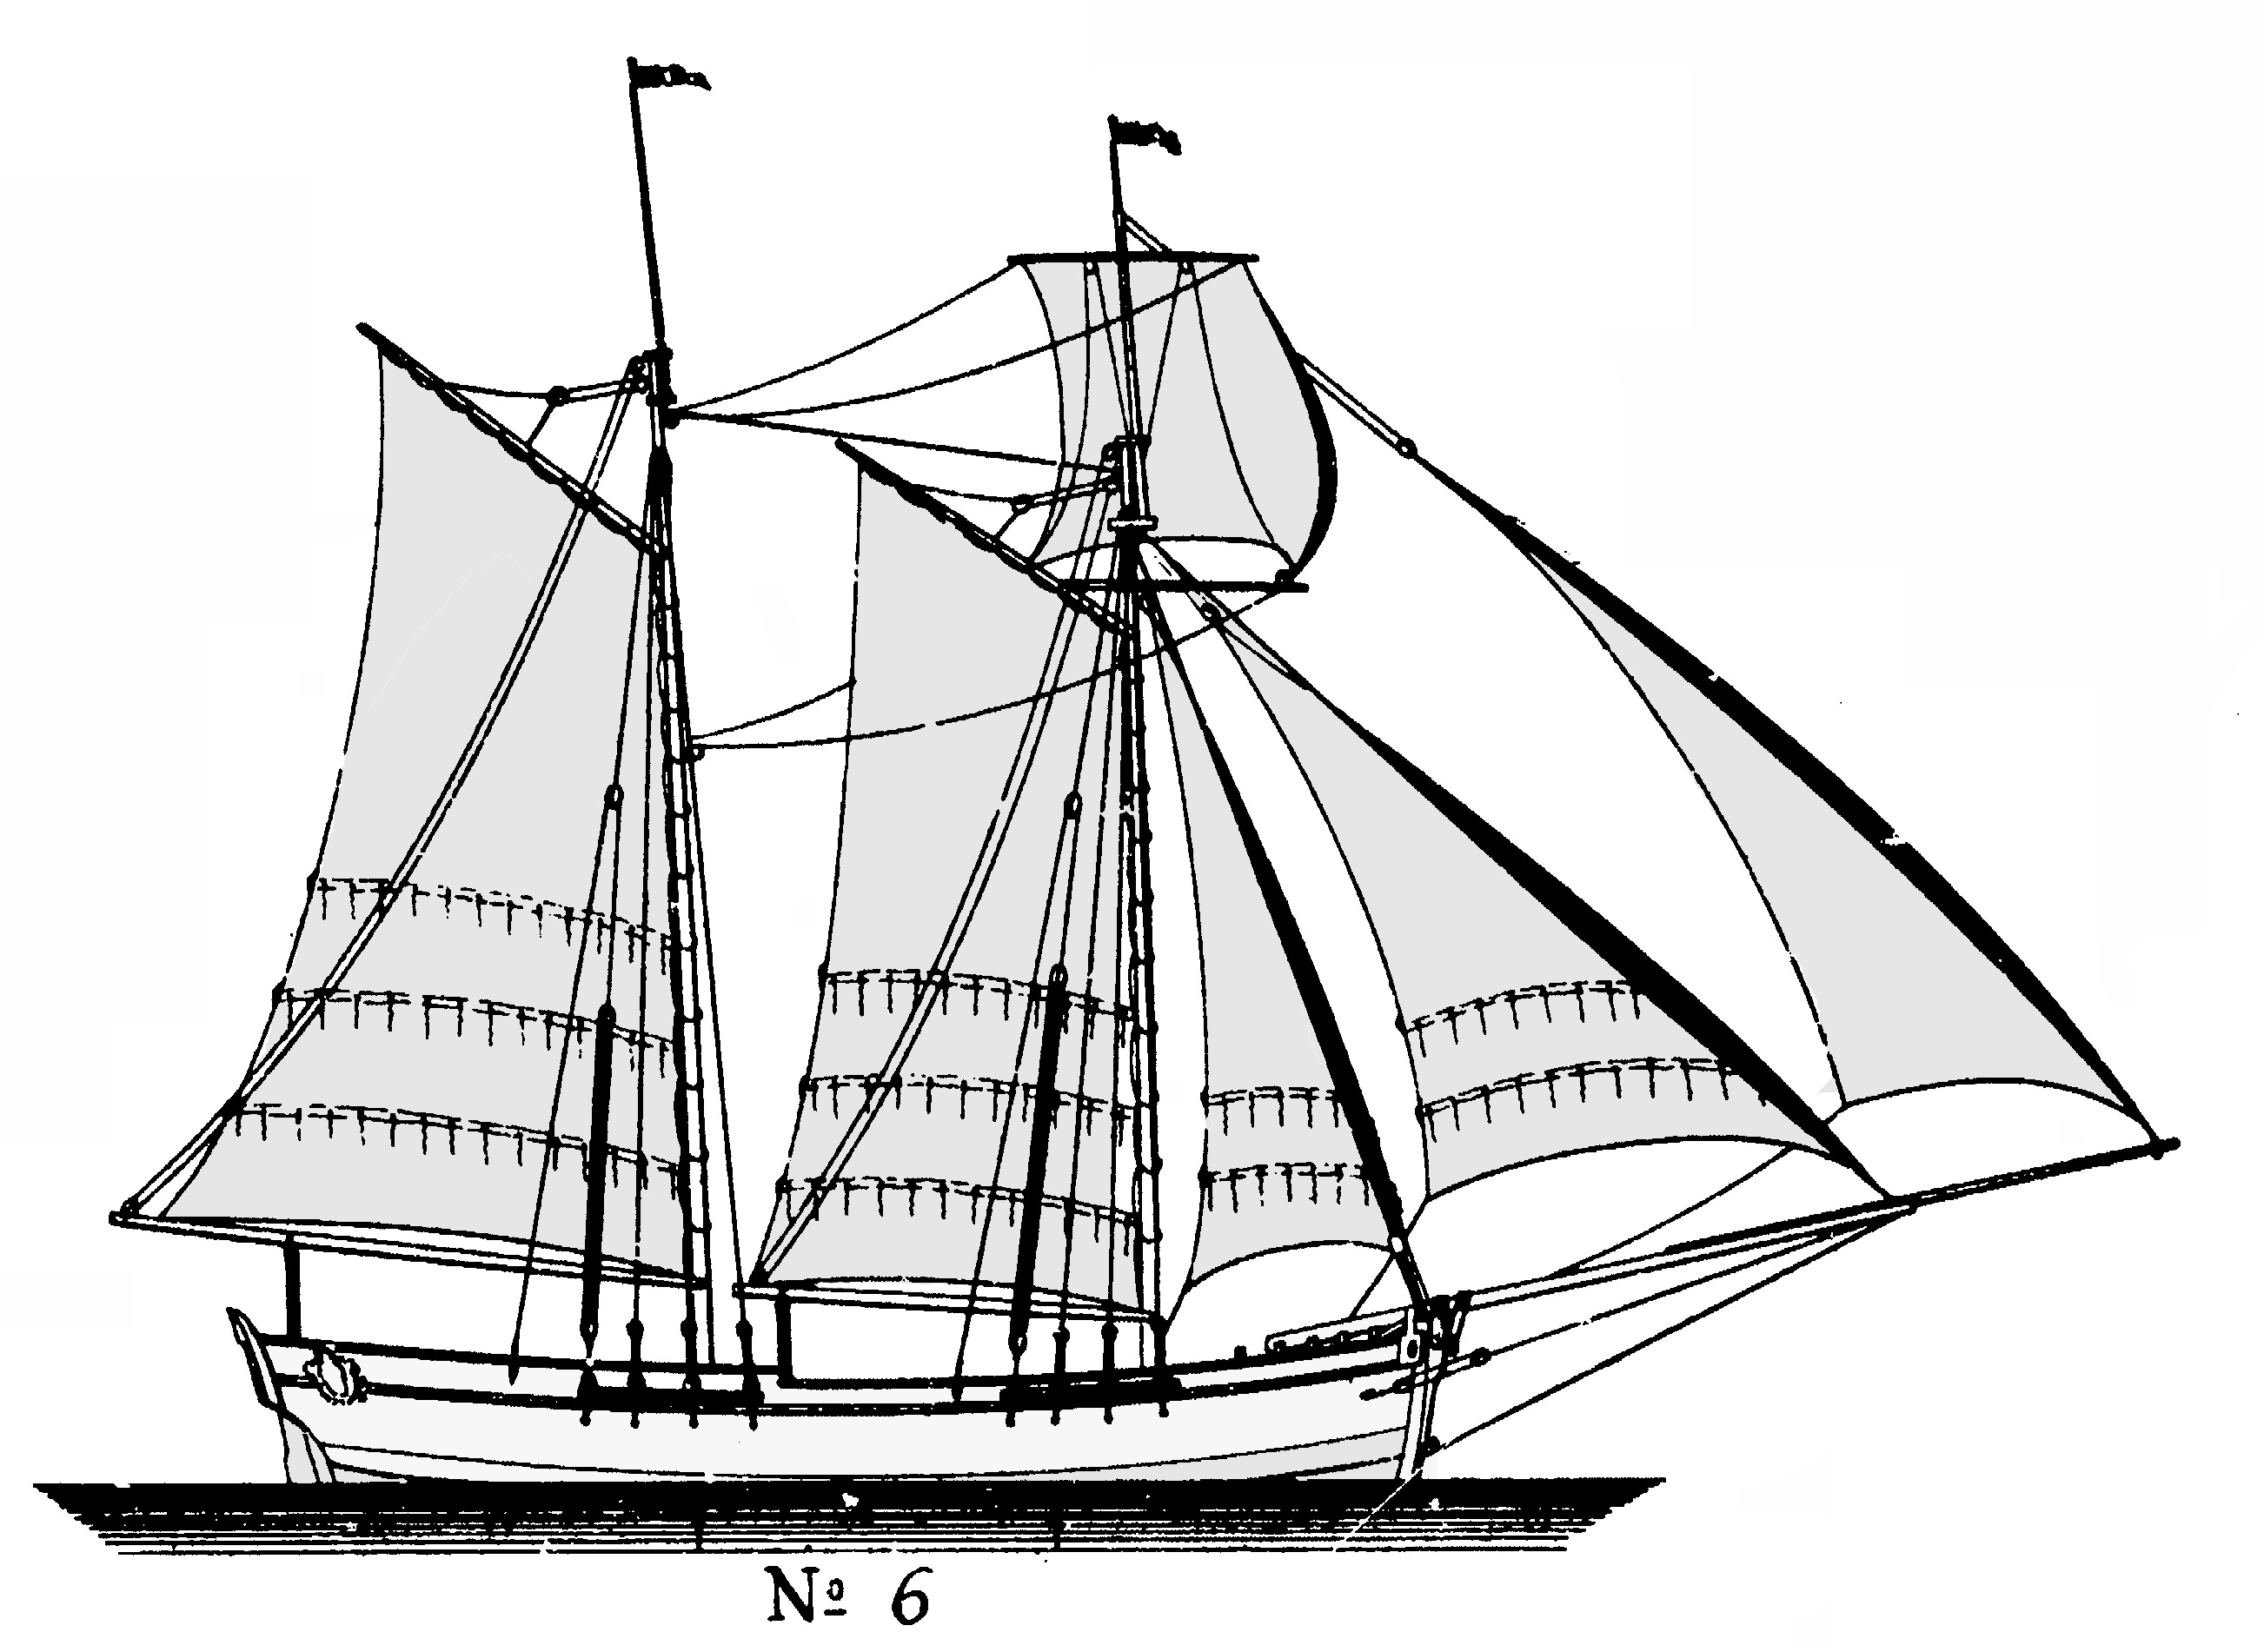 Real Clinker Sailing Boat Plans moreover Ships Discovery likewise Plans And Drawings moreover Lifesaving Appliance further Anniversaire Pirate 8. on old wooden boat